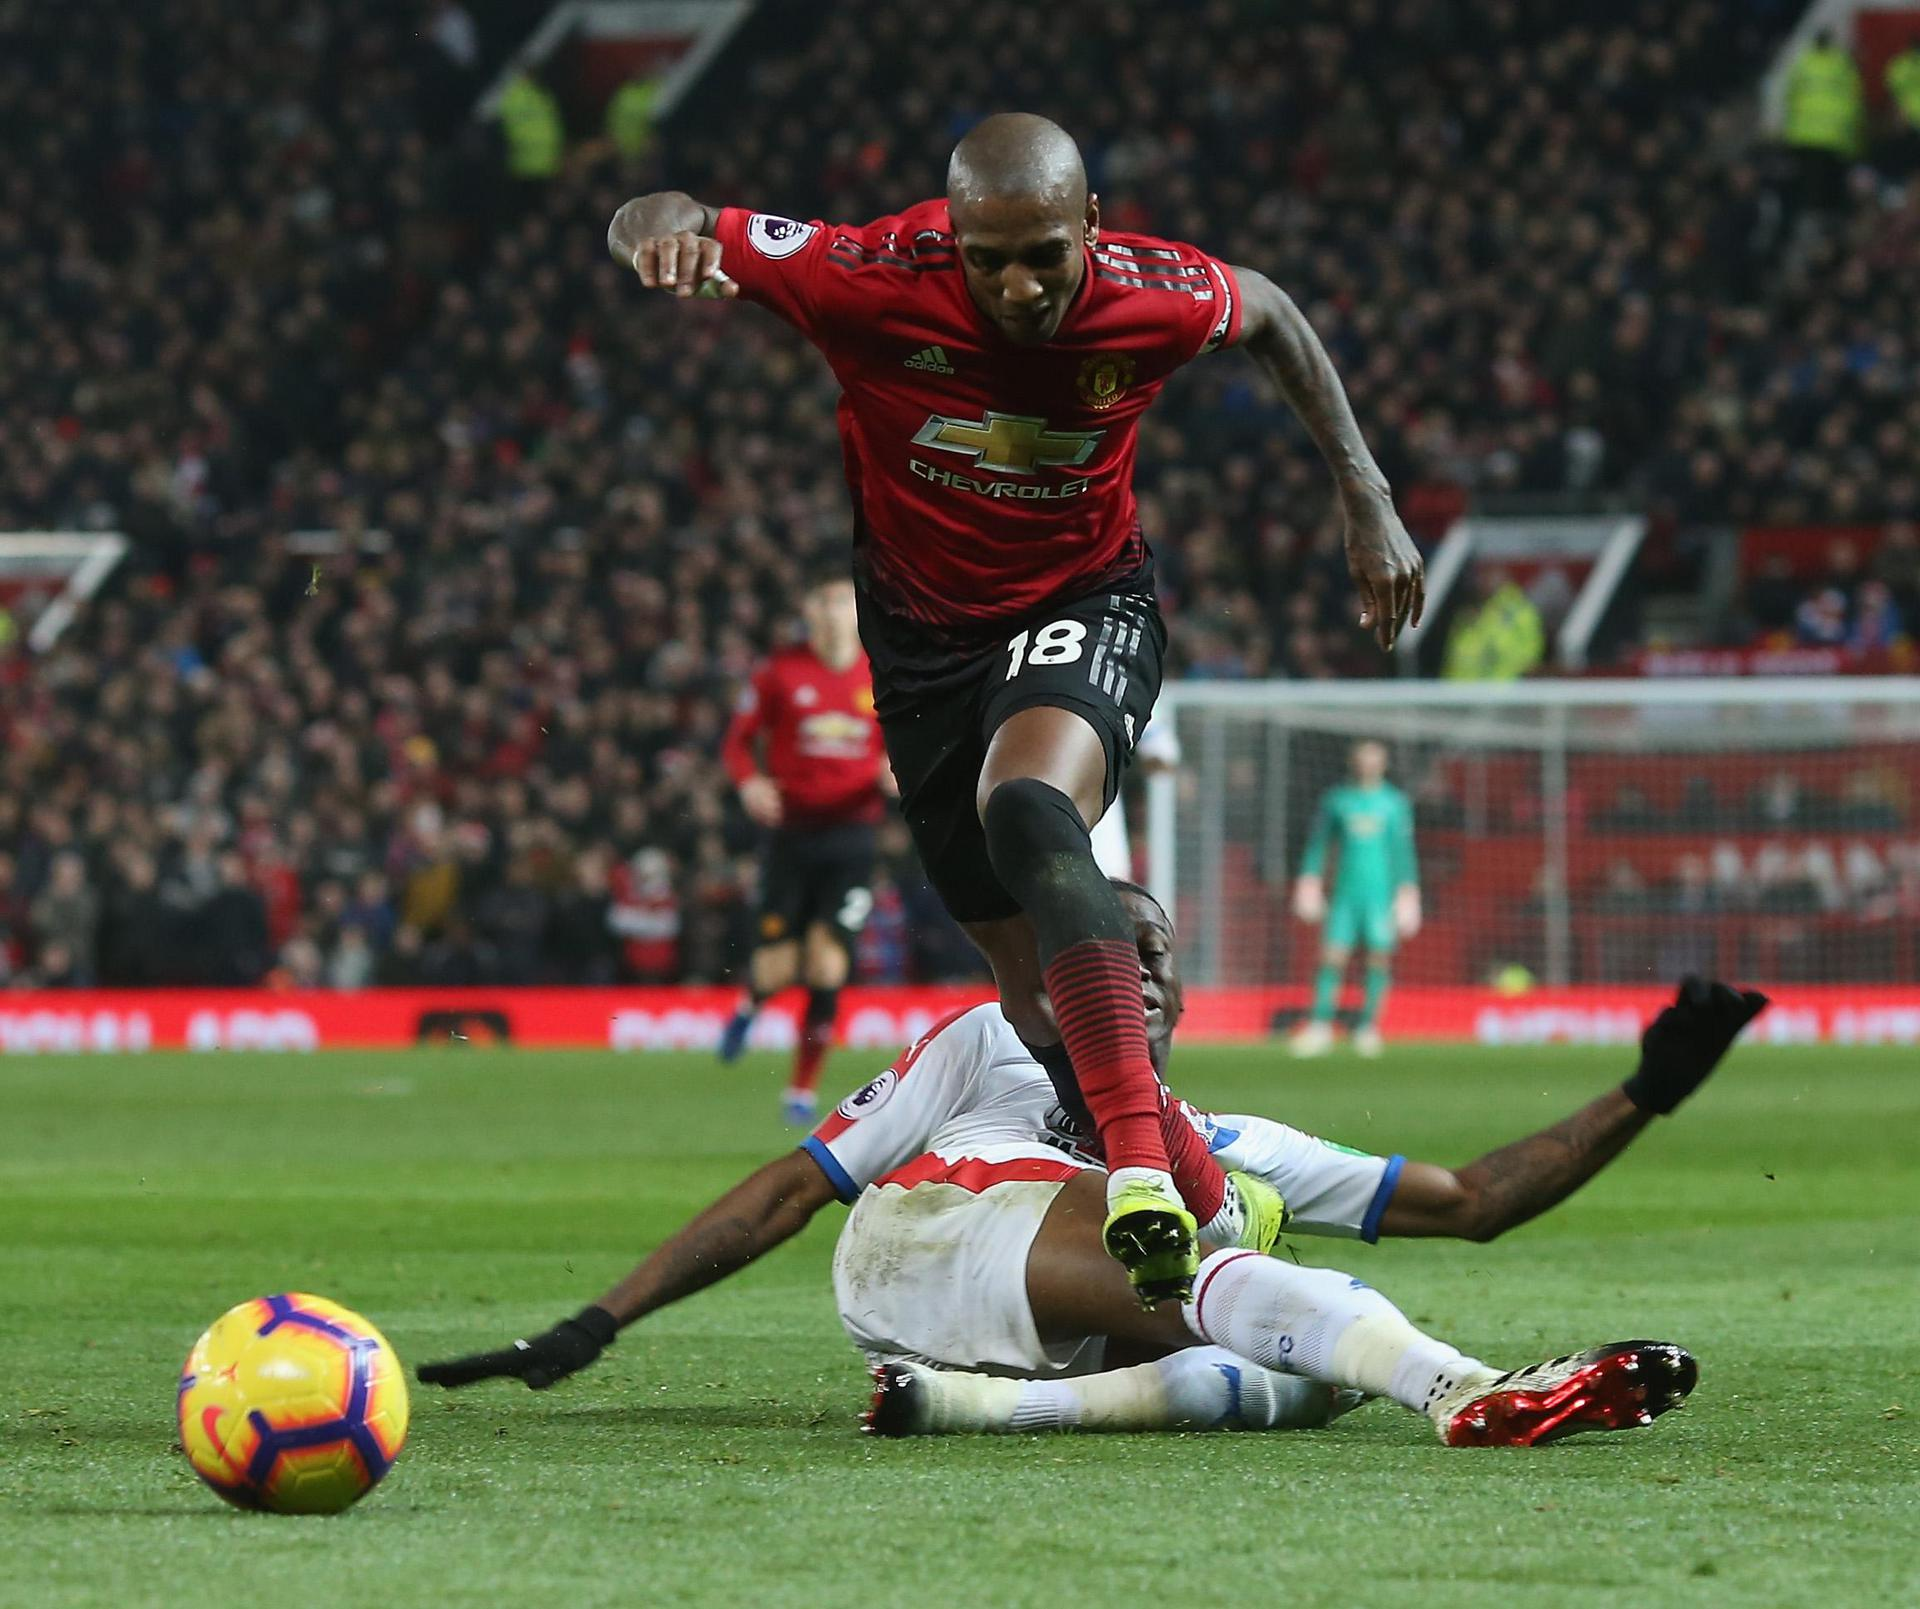 Ashley Young is tripped